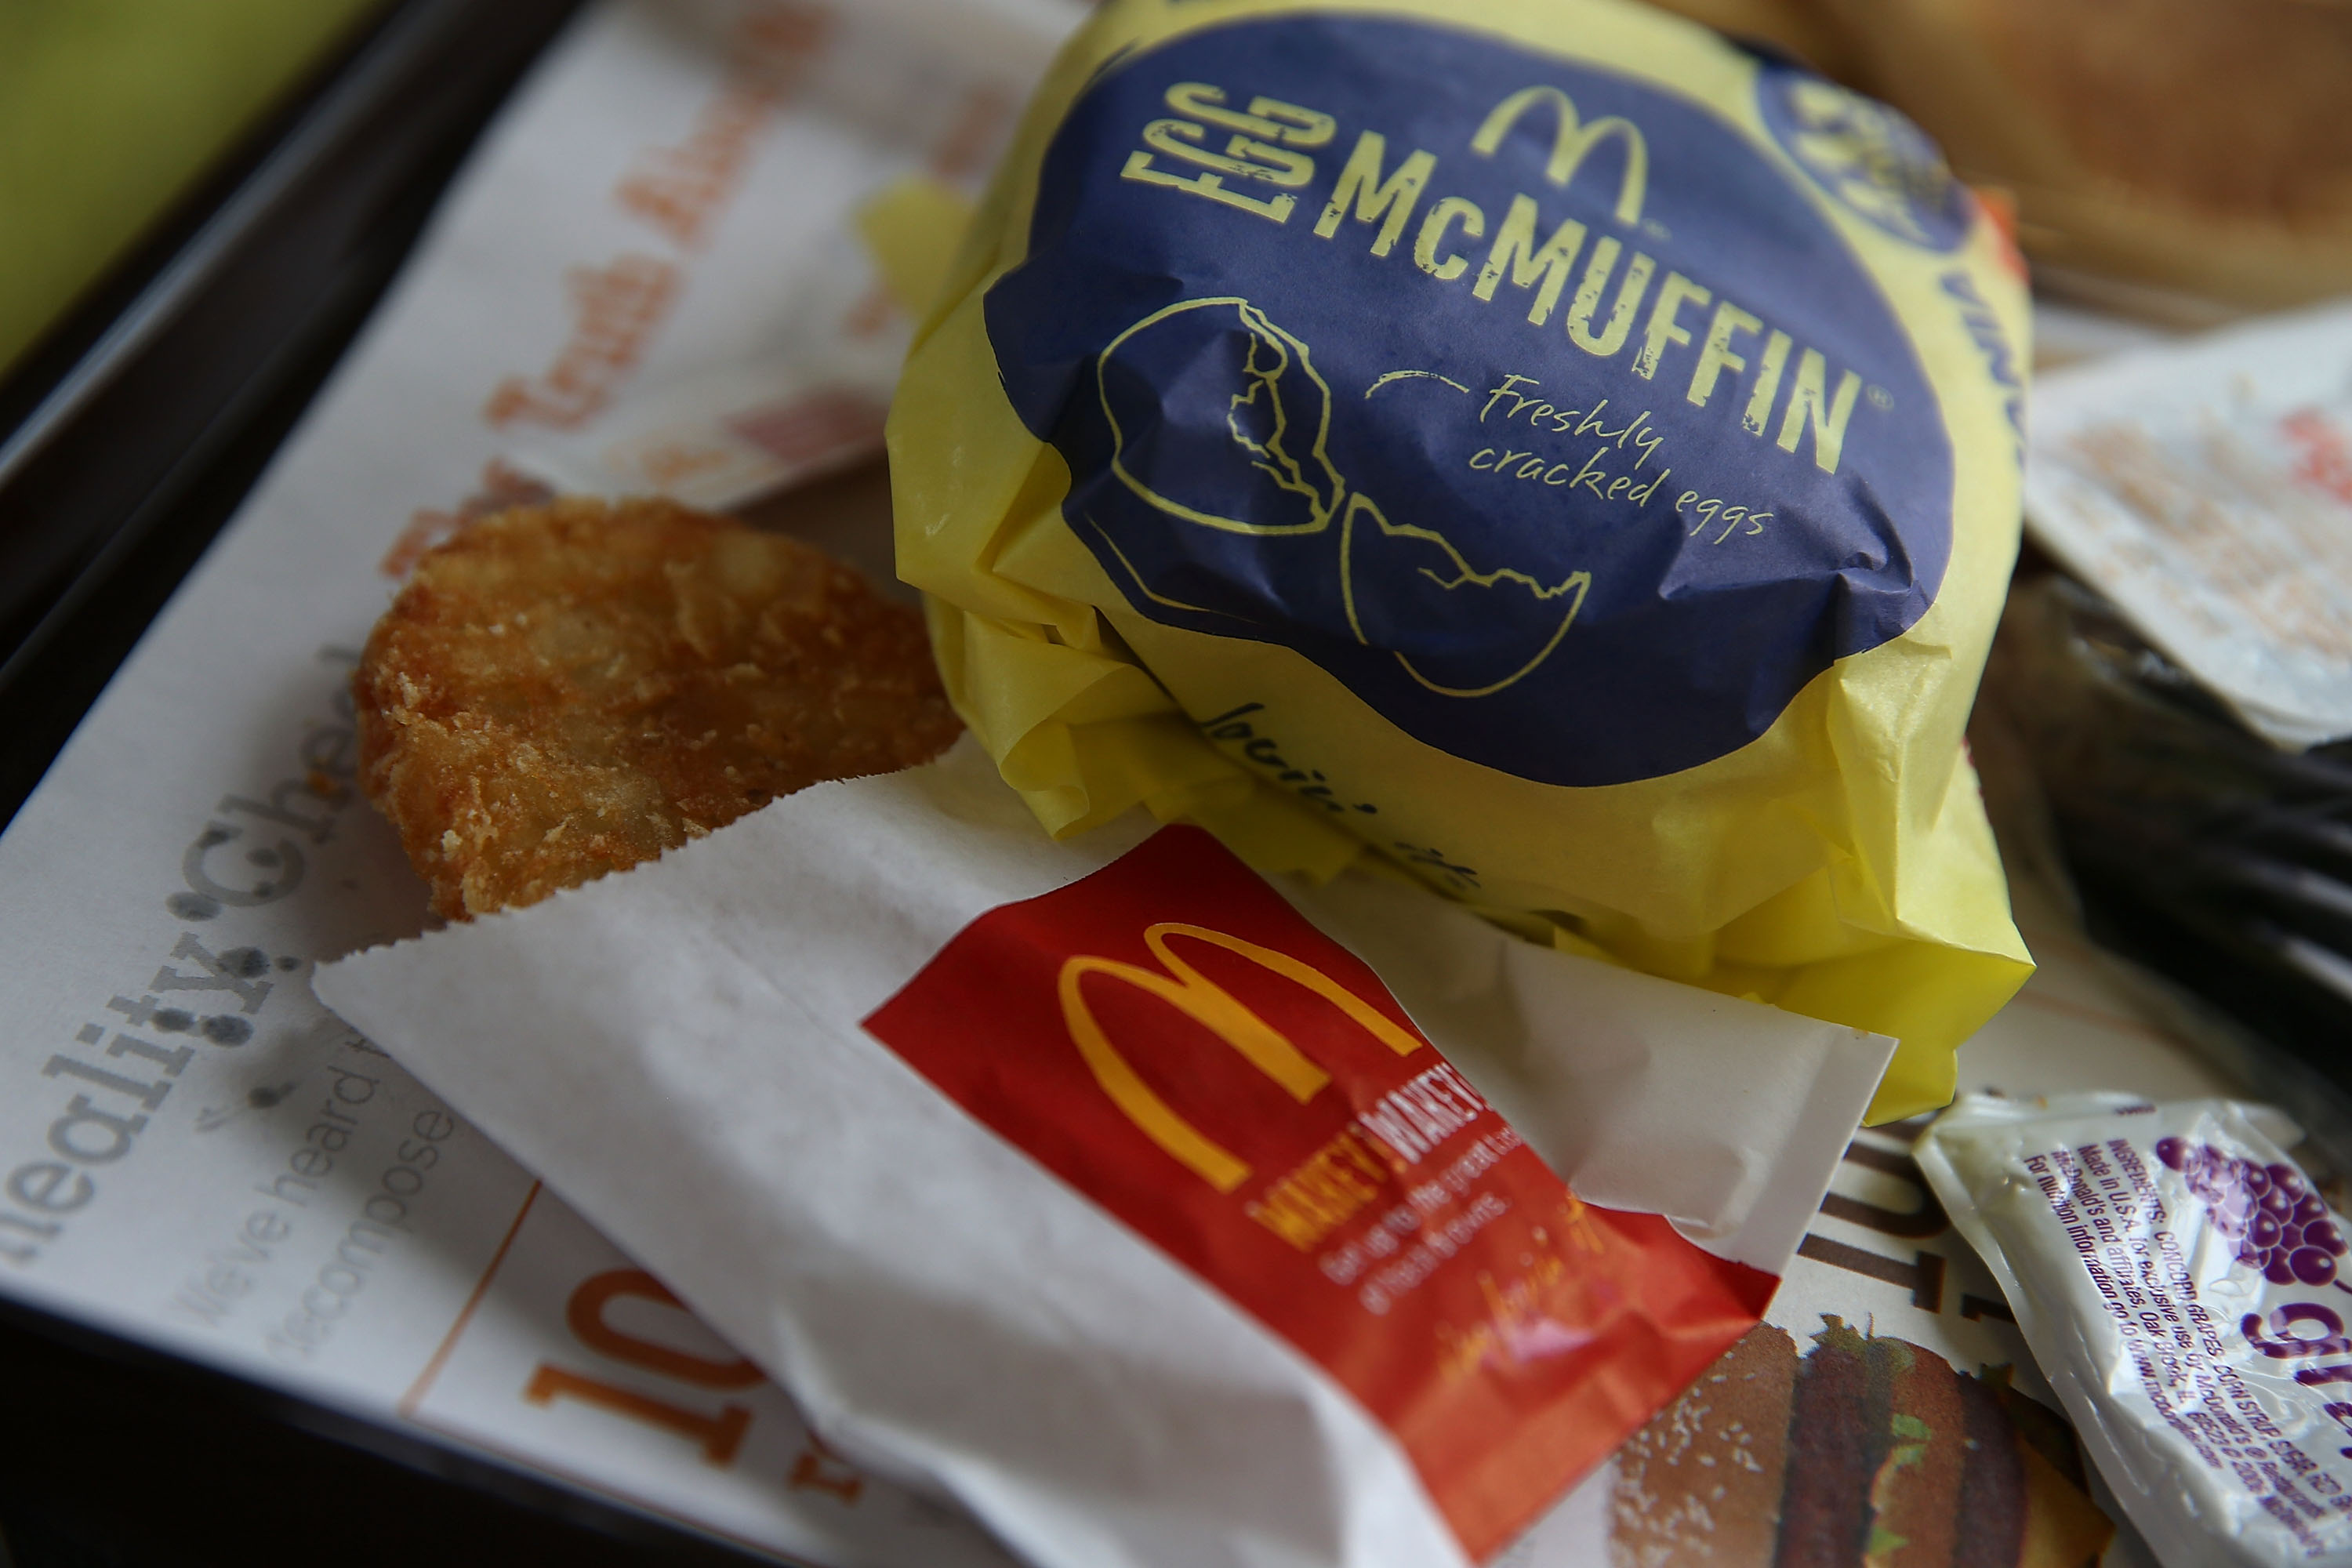 A McDonald's Egg McMuffin and hash browns.